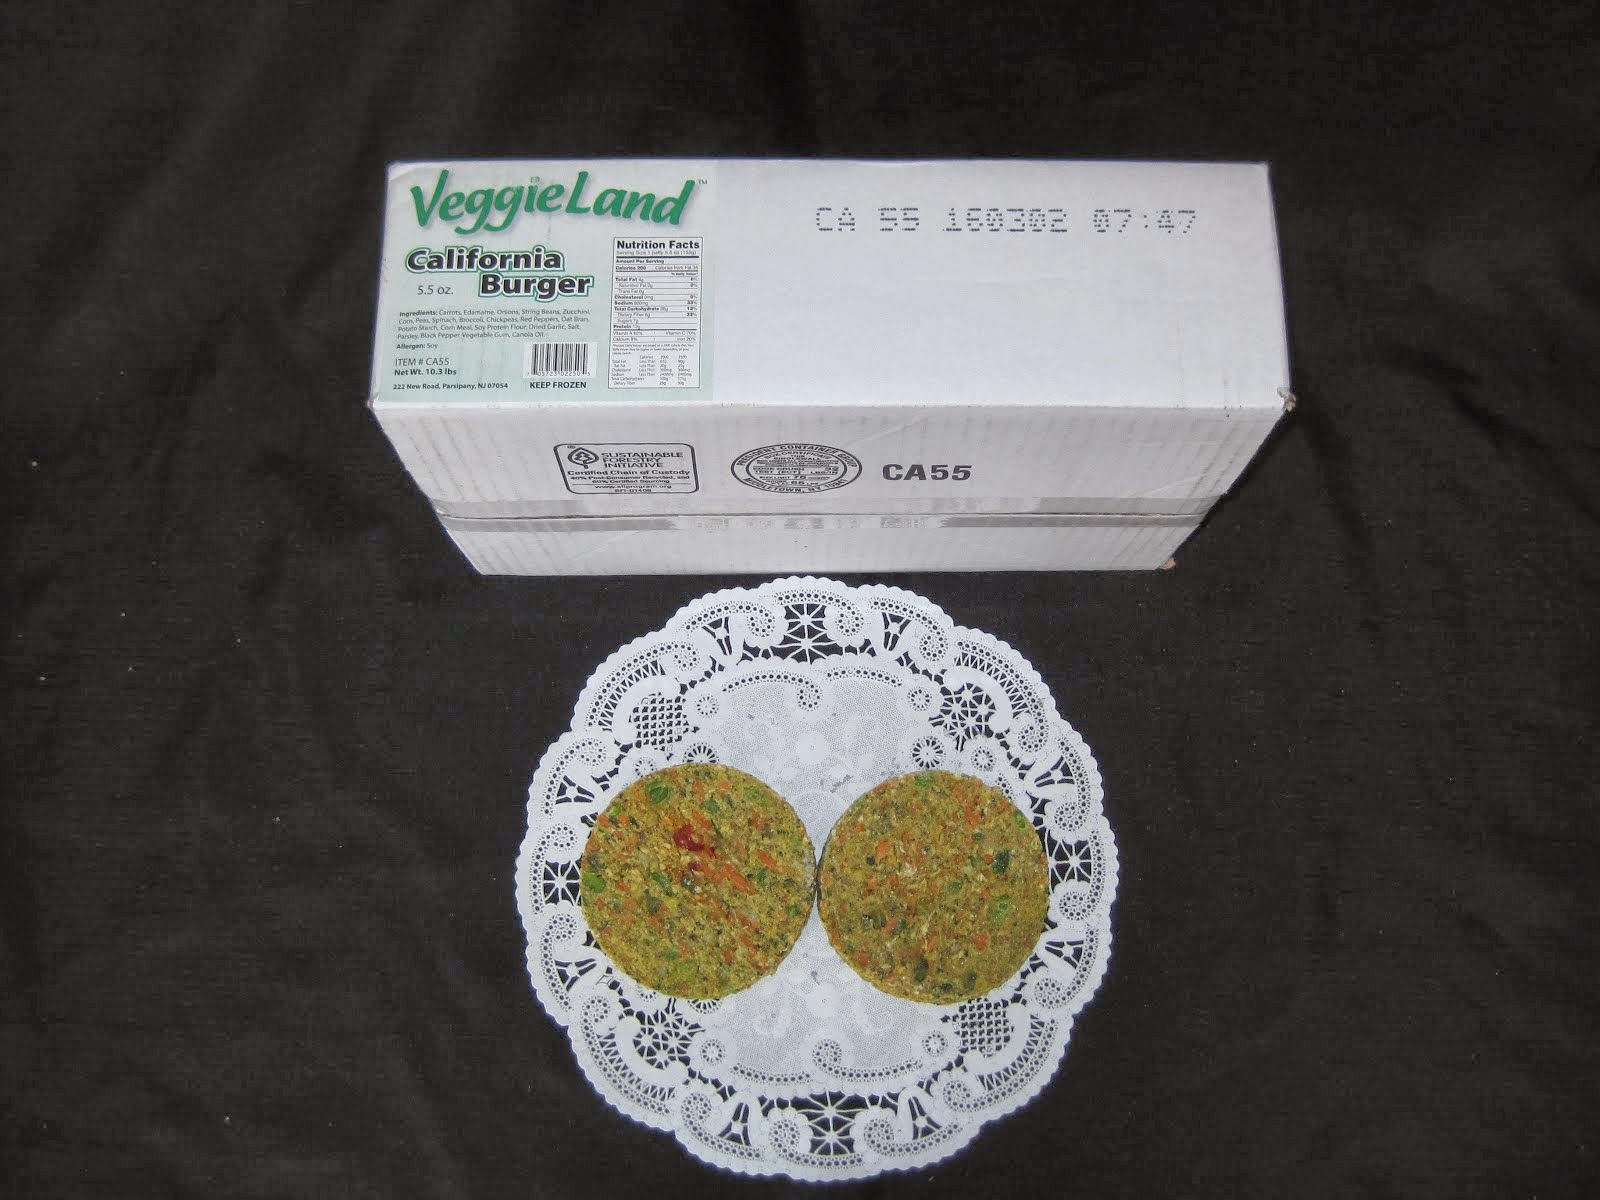 VeggieLand California Burger 30/5.5 oz - Item # 14066